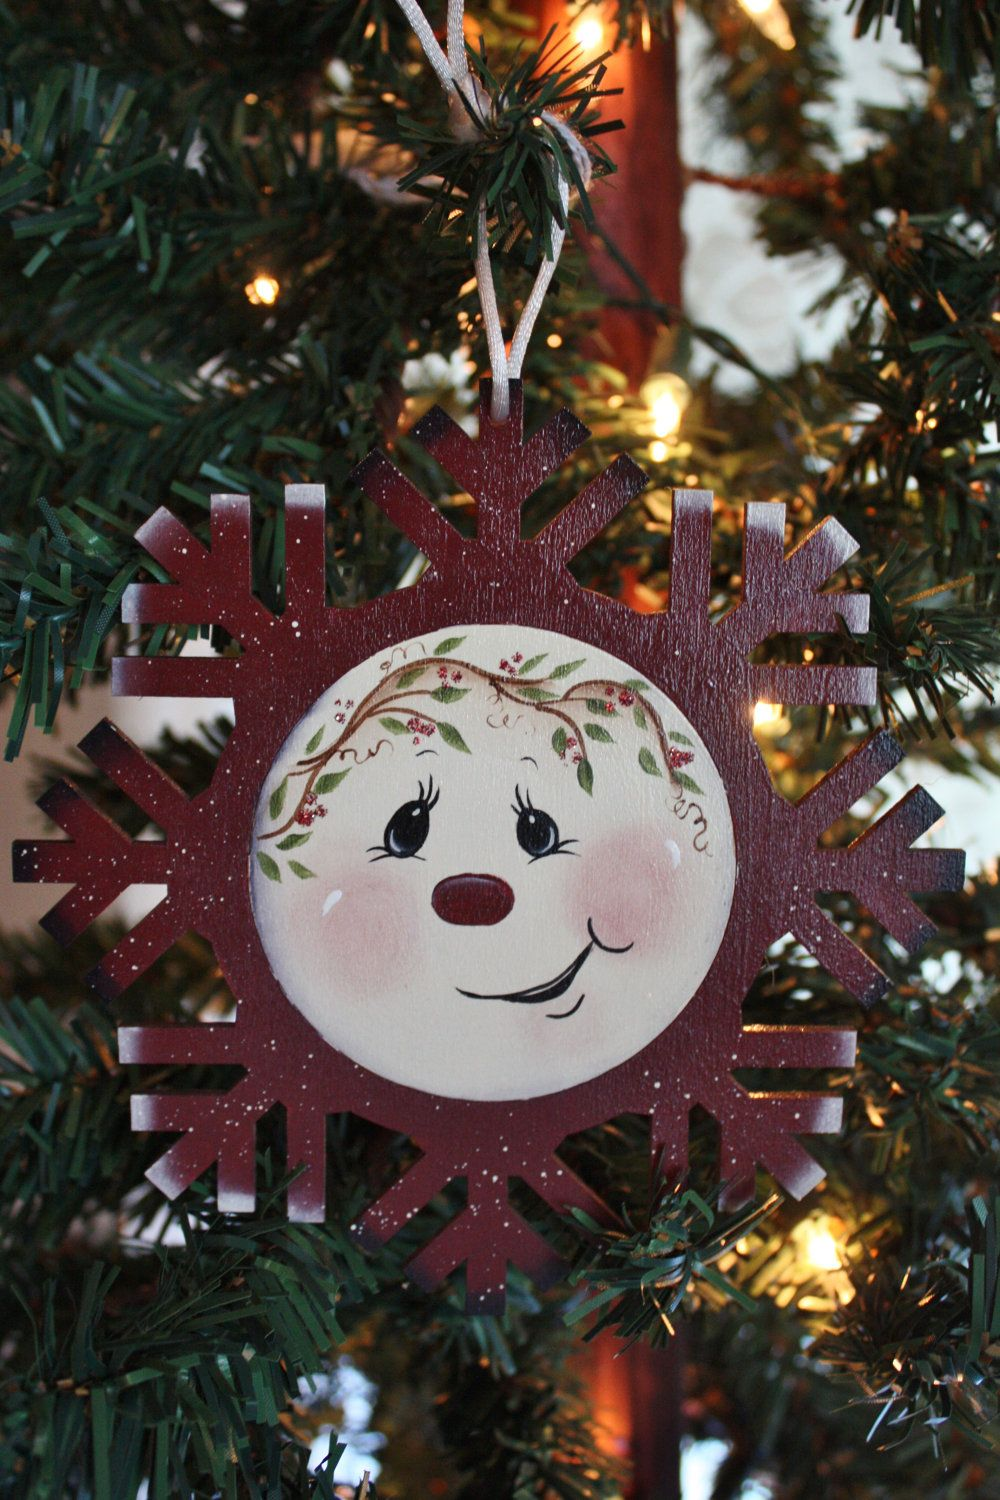 Snowman face ornament - Hand Painted Snowflake Wood Ornament With Snowman Face